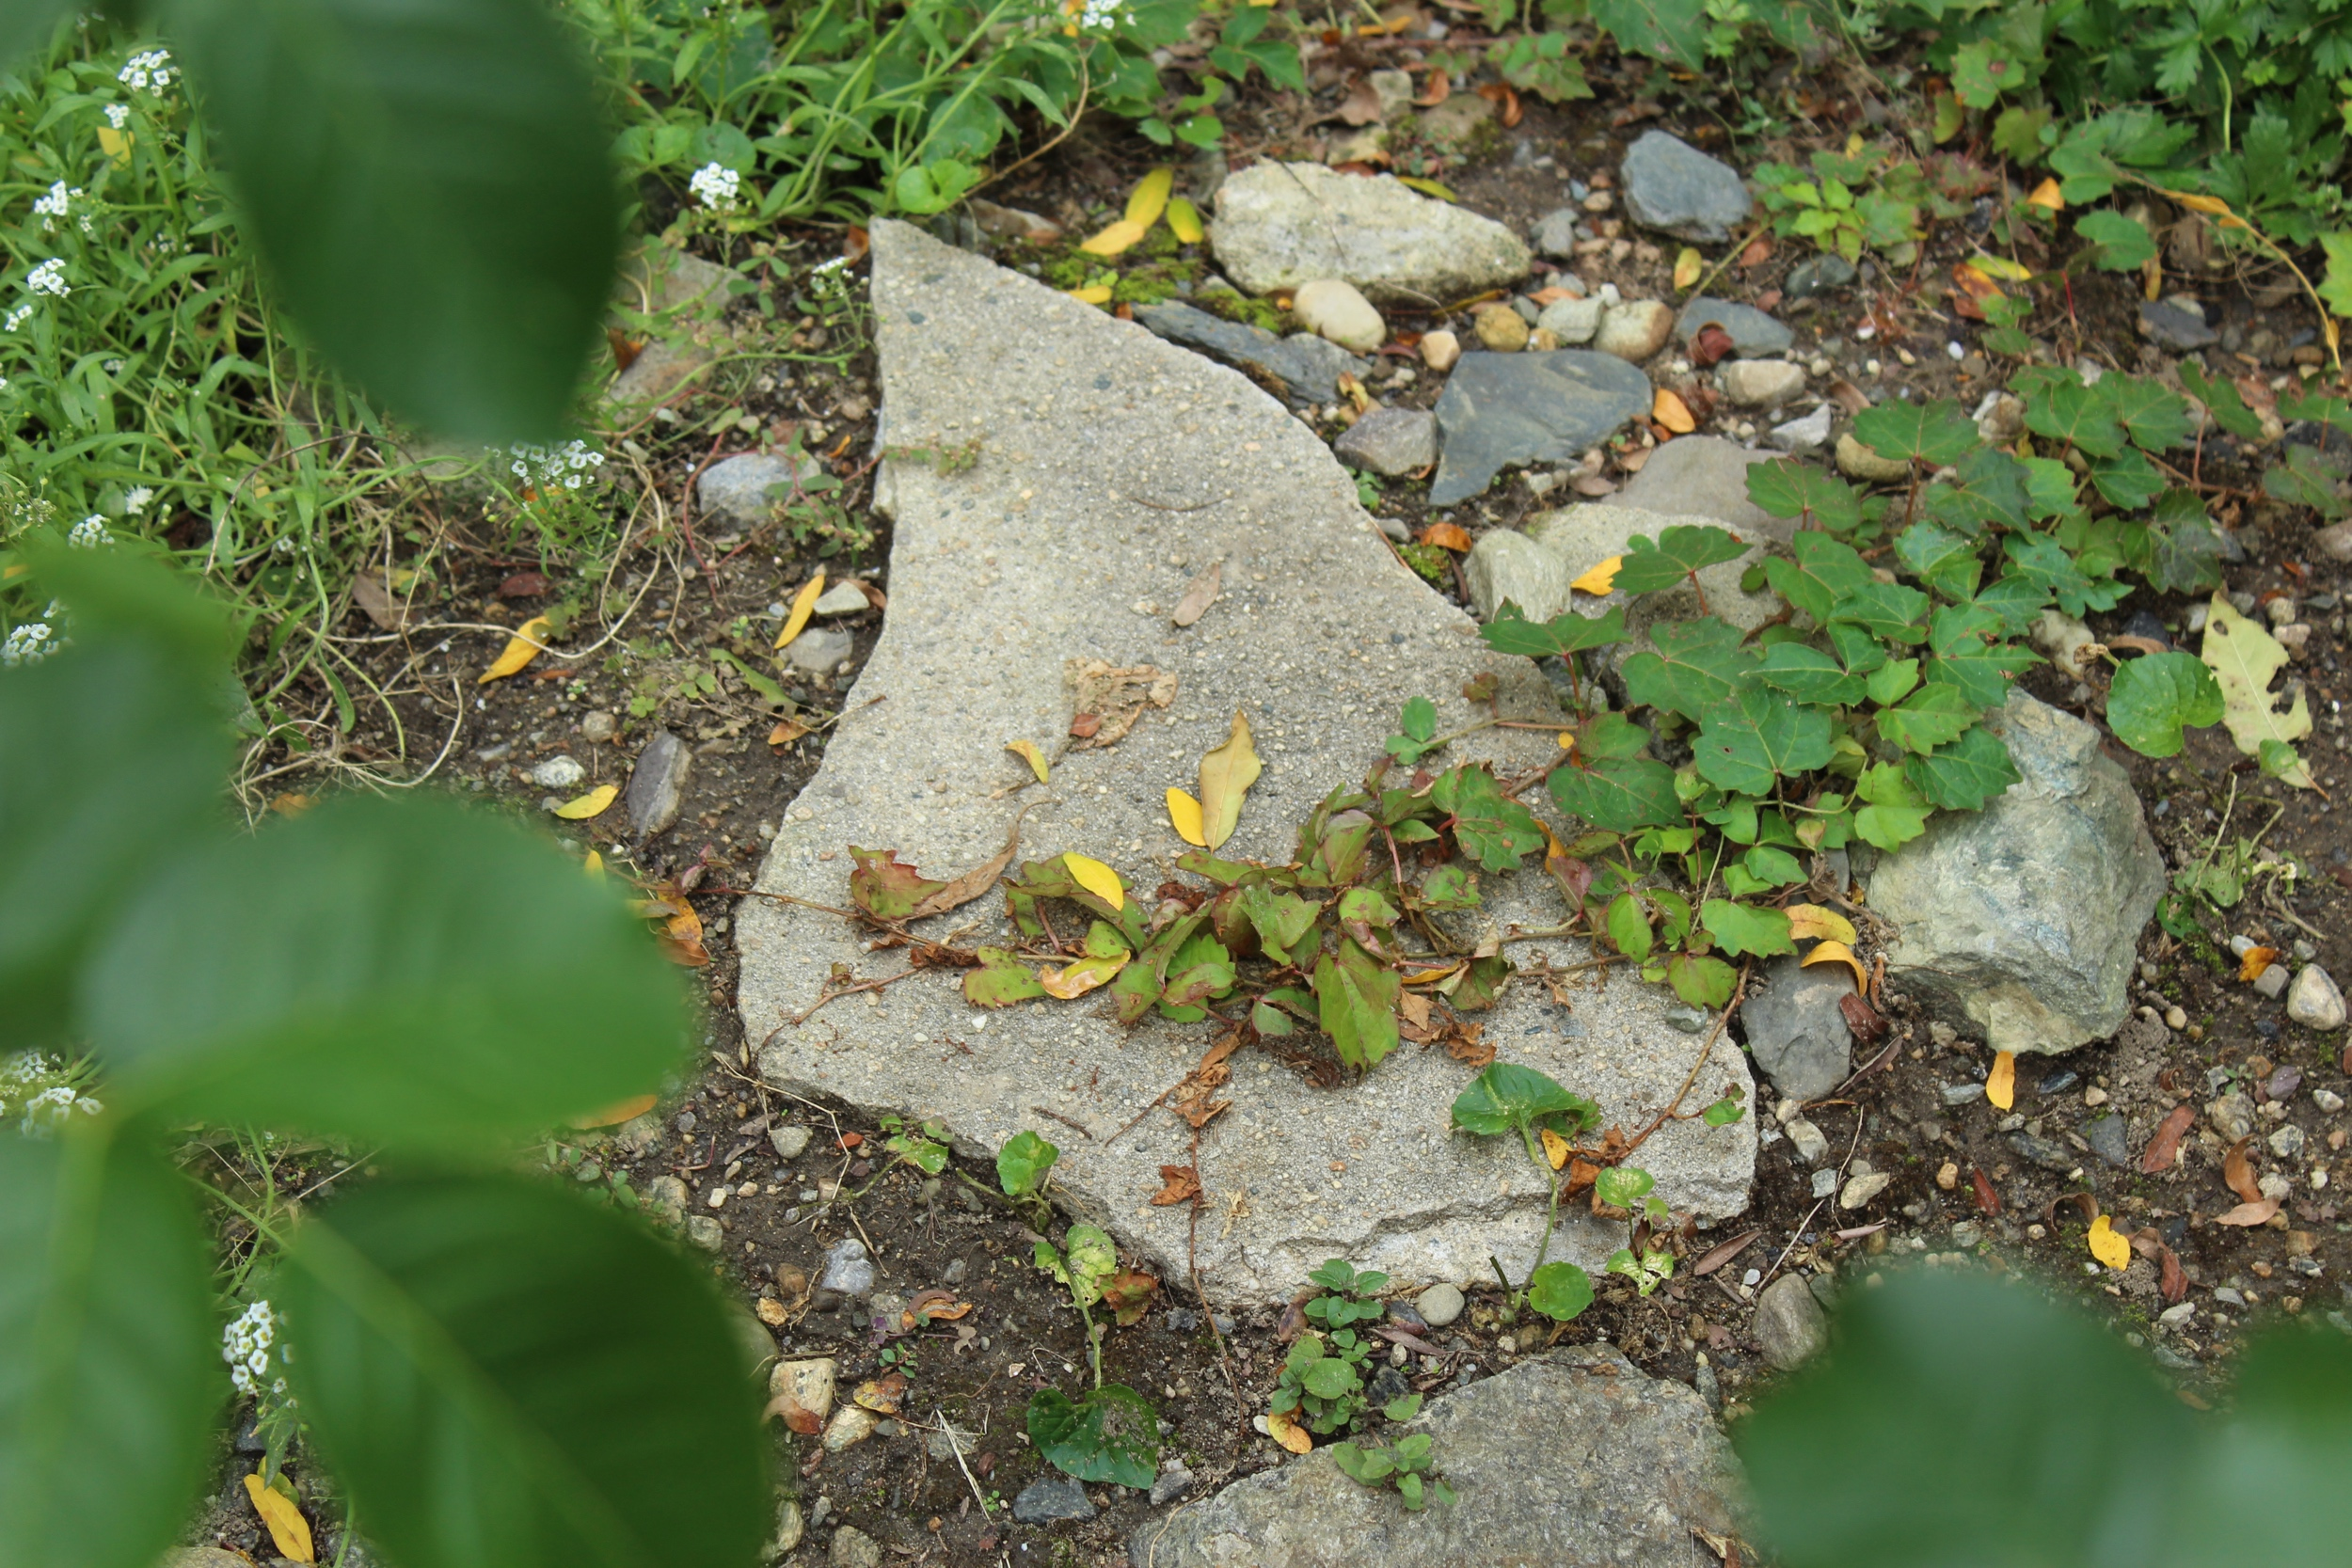 Remnants found on the property from Urban Renewal's demolitions of the 1960s were incorporated into this artist's garden design Photo by Jessica Jennings